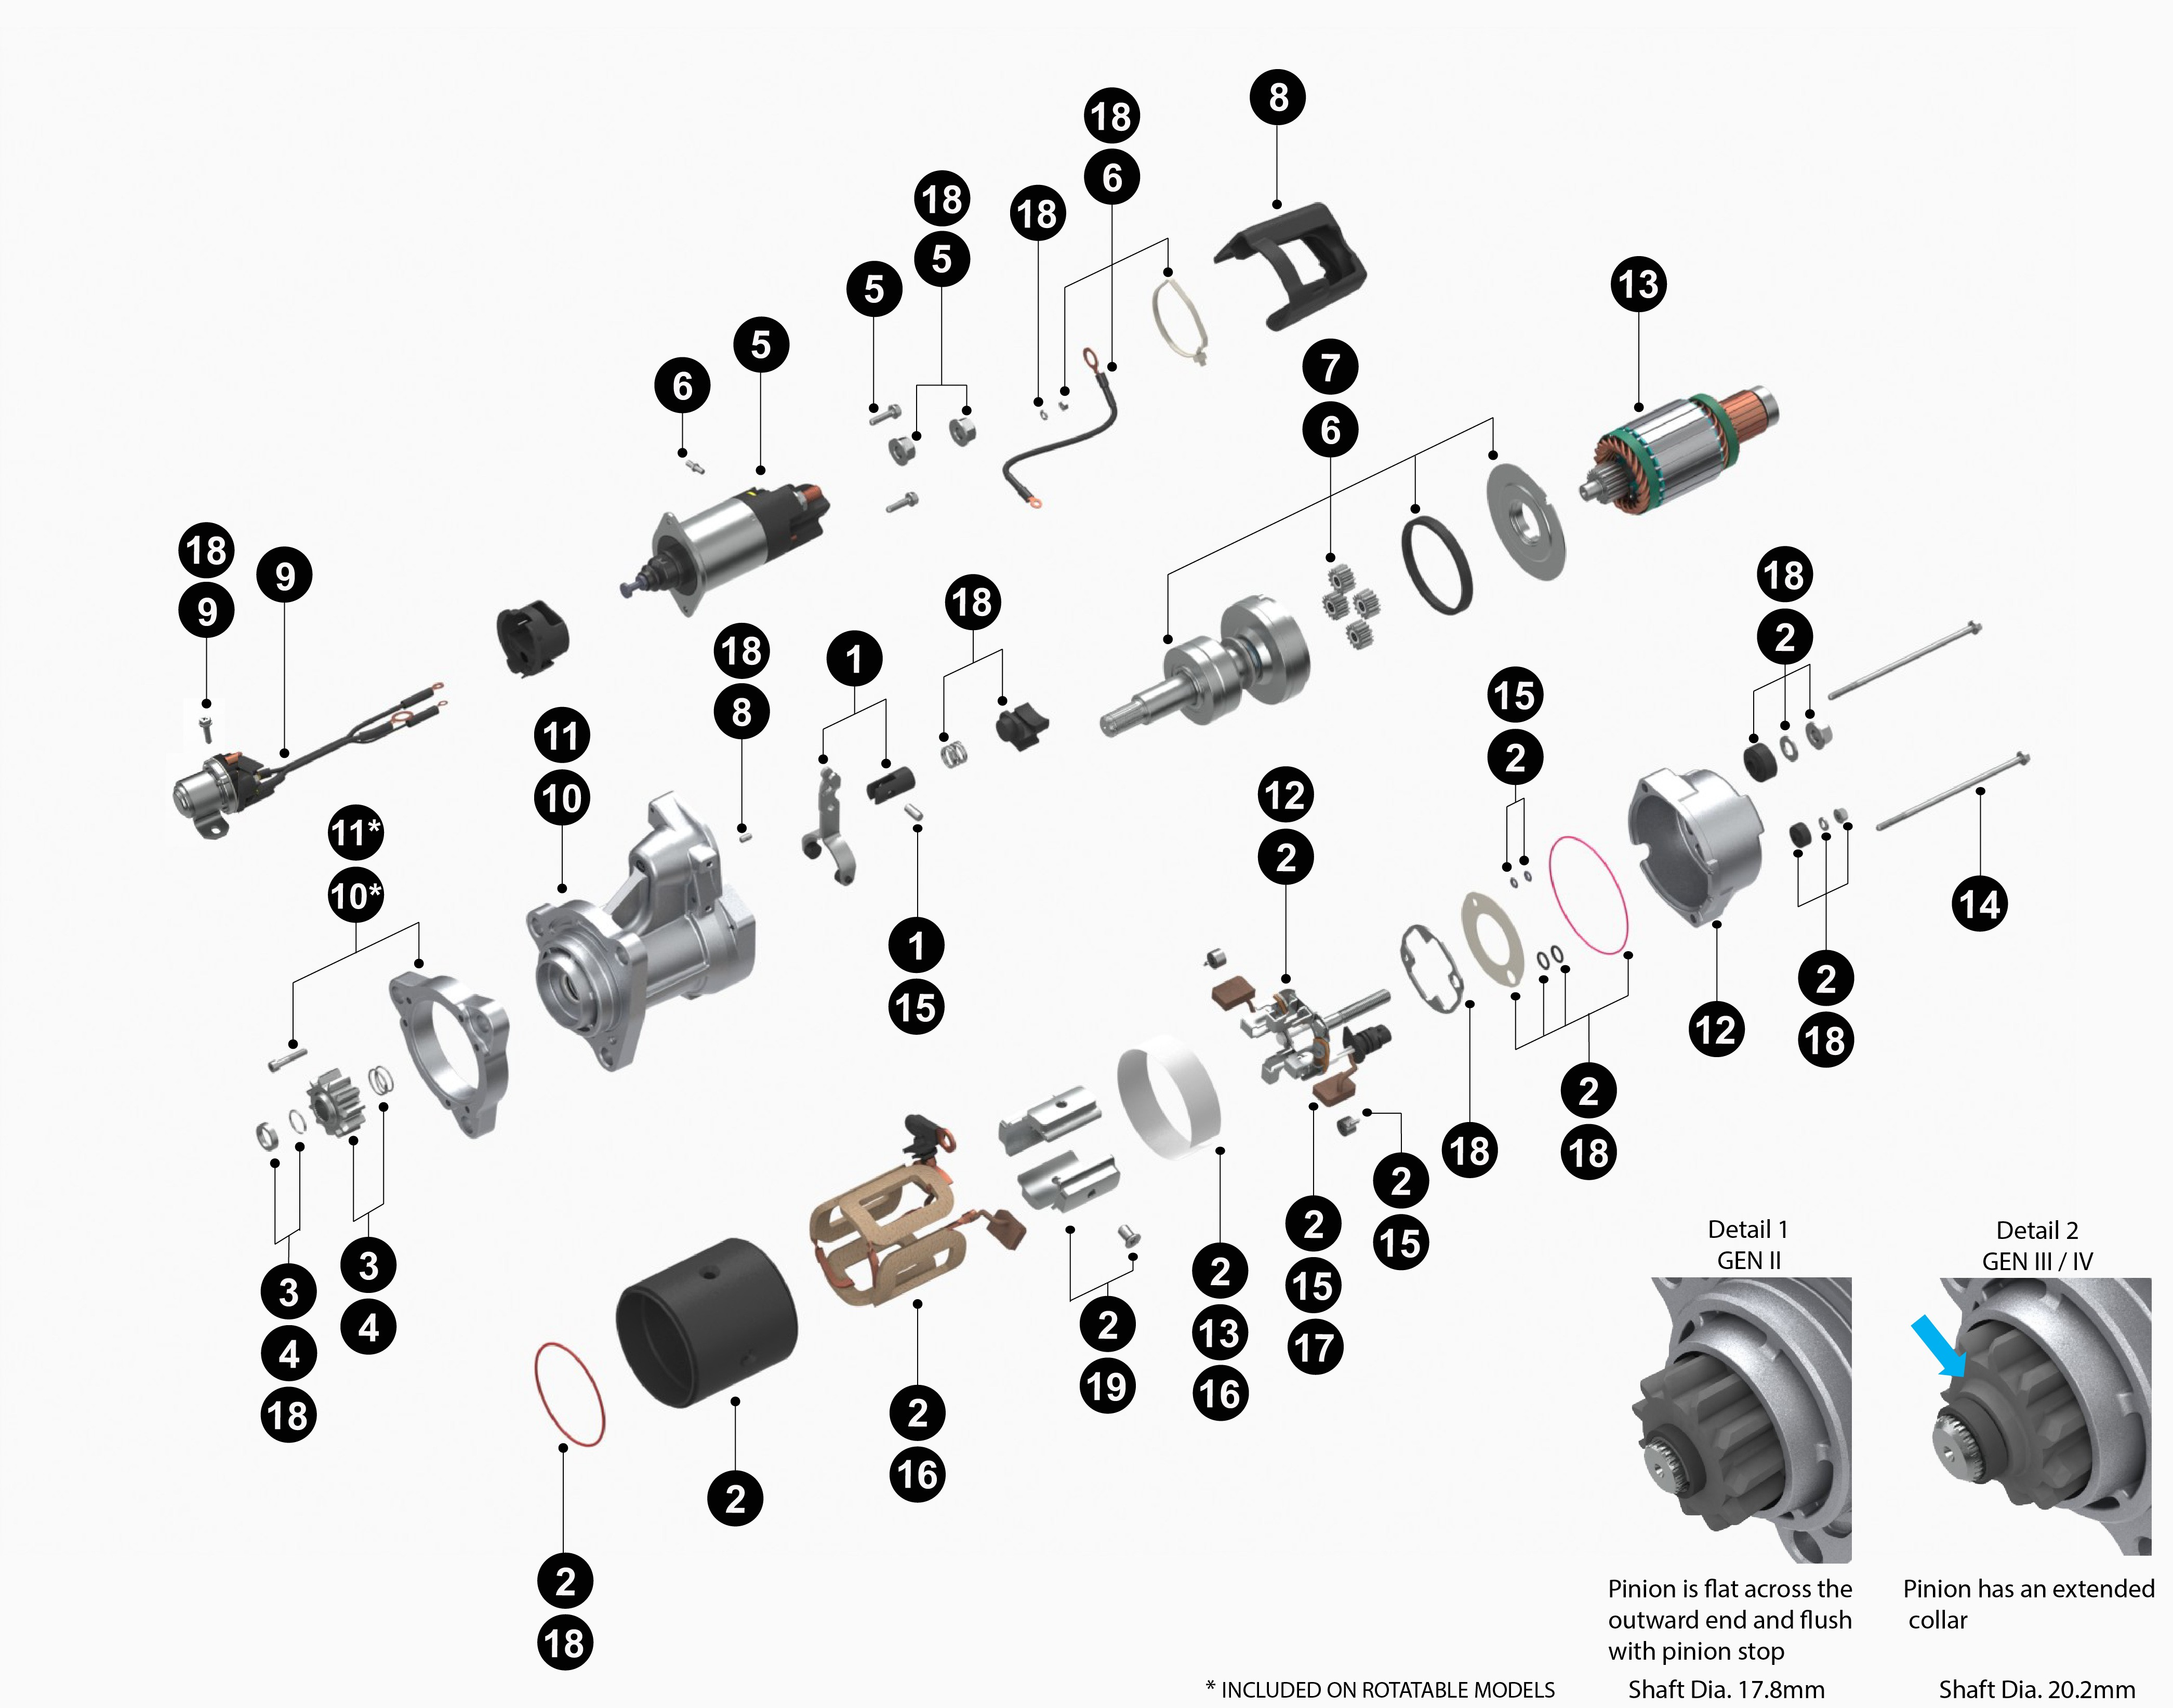 Cummins isx Engine Diagram 12v 39mt Starter Oem Delco Replaces We Of Cummins isx Engine Diagram